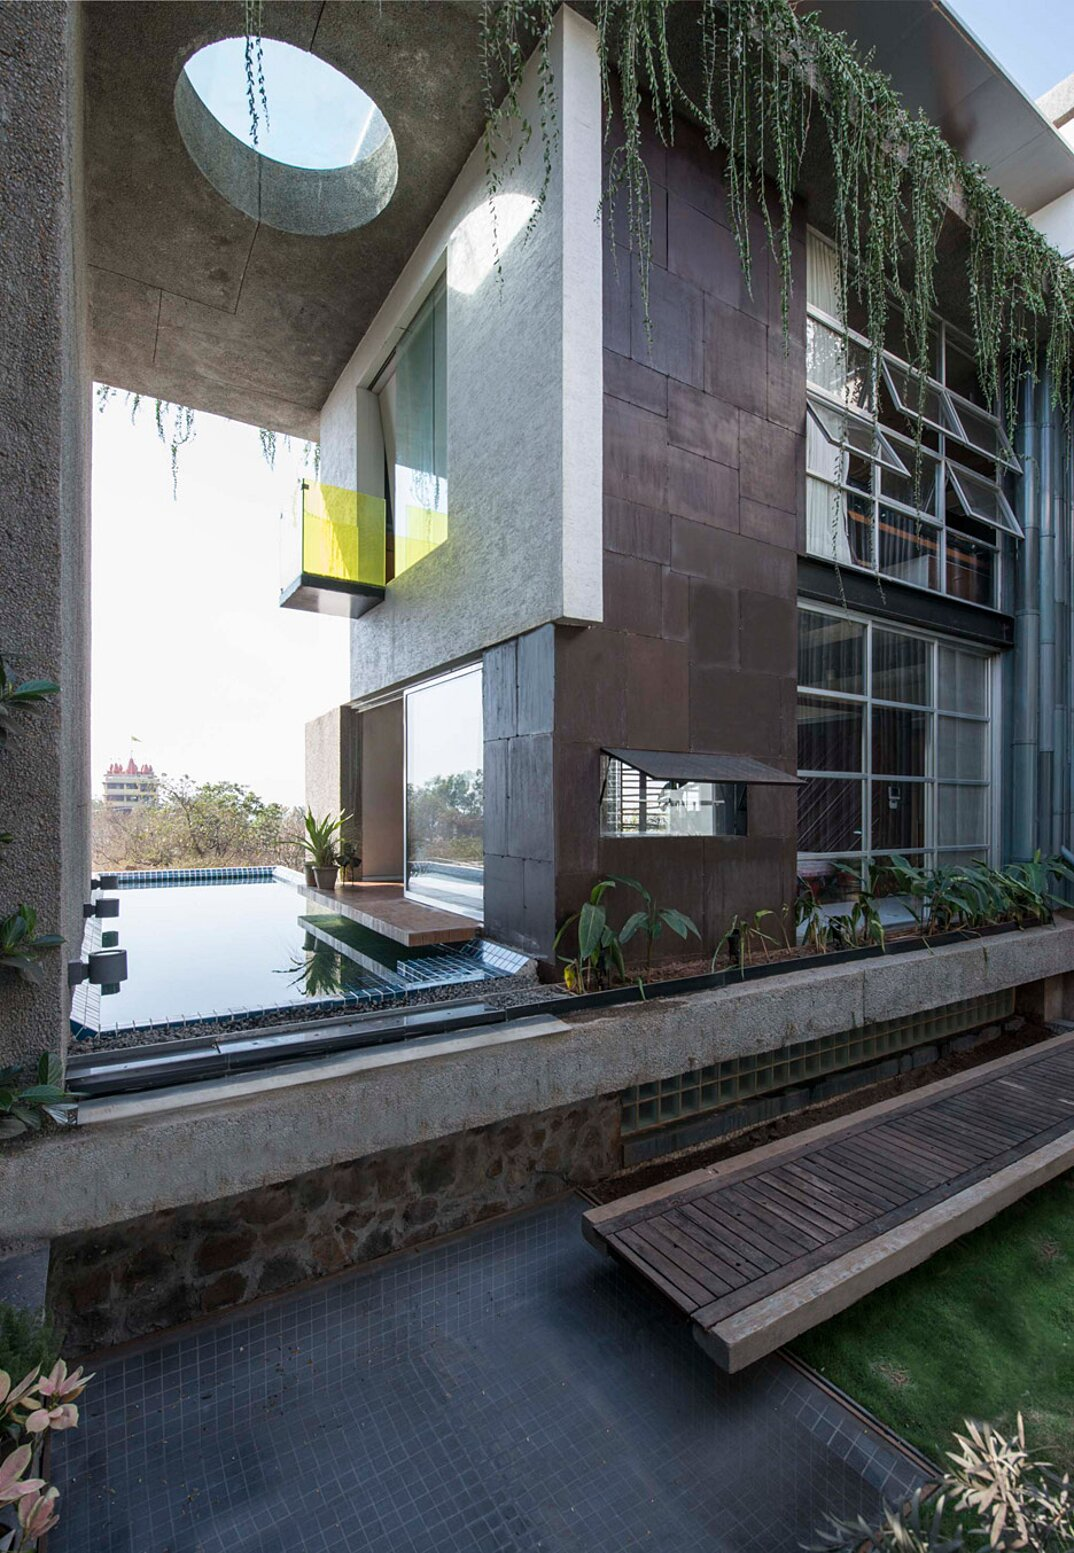 edificio-materiali-riciclati-architettura-sostenibile-mumbai-sps-architects-32